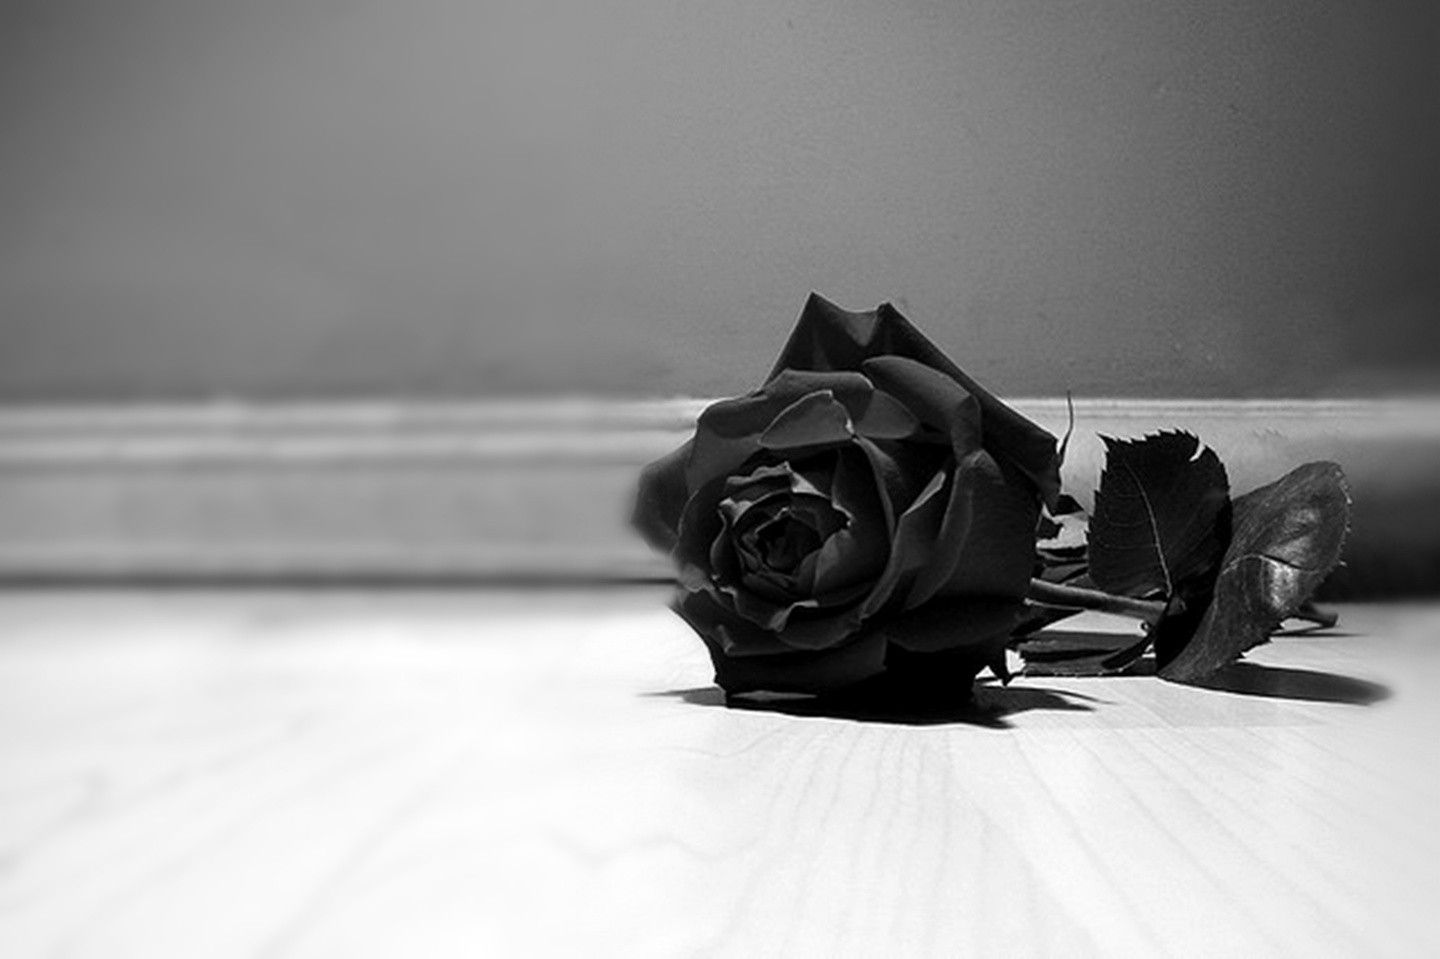 Top Free Black Rose Backgrounds